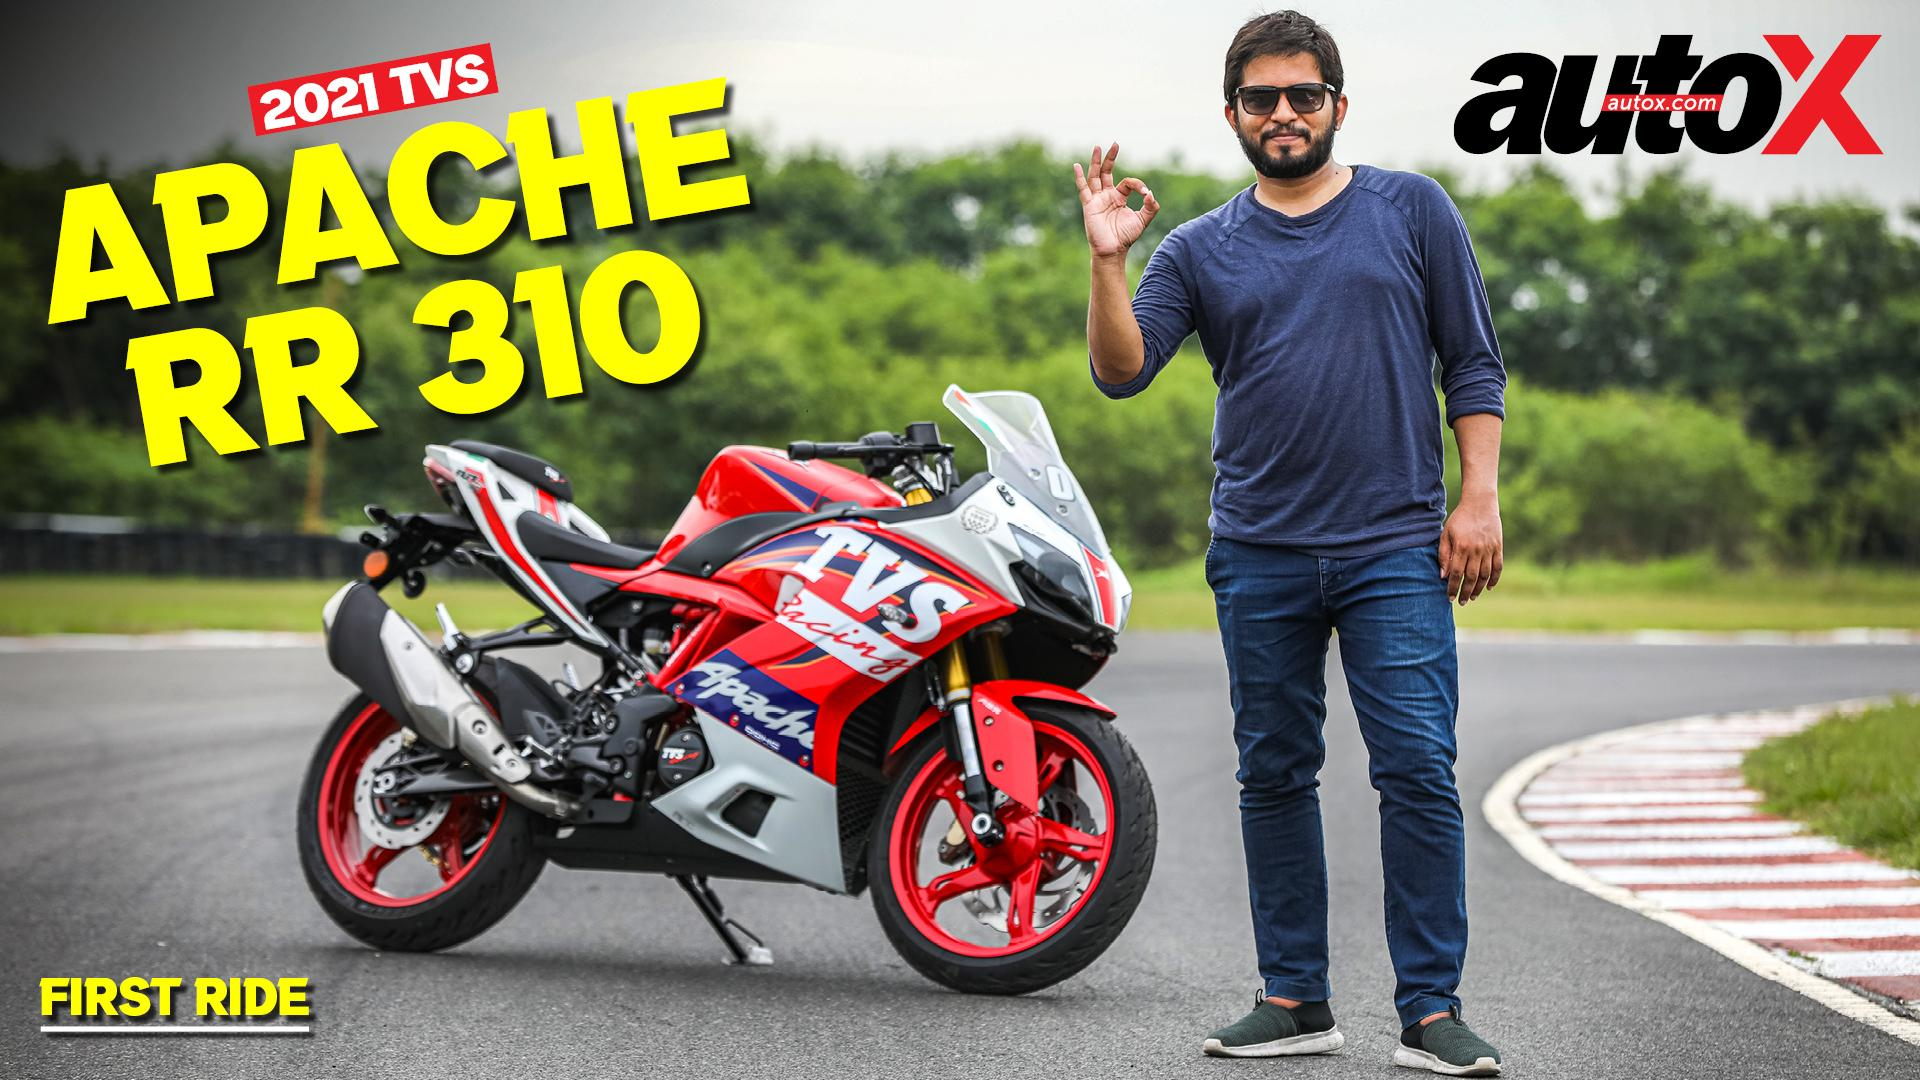 Here's why the 2021 TVS Apache RR 310 is the Best Sportsbike in India | Review | autoX